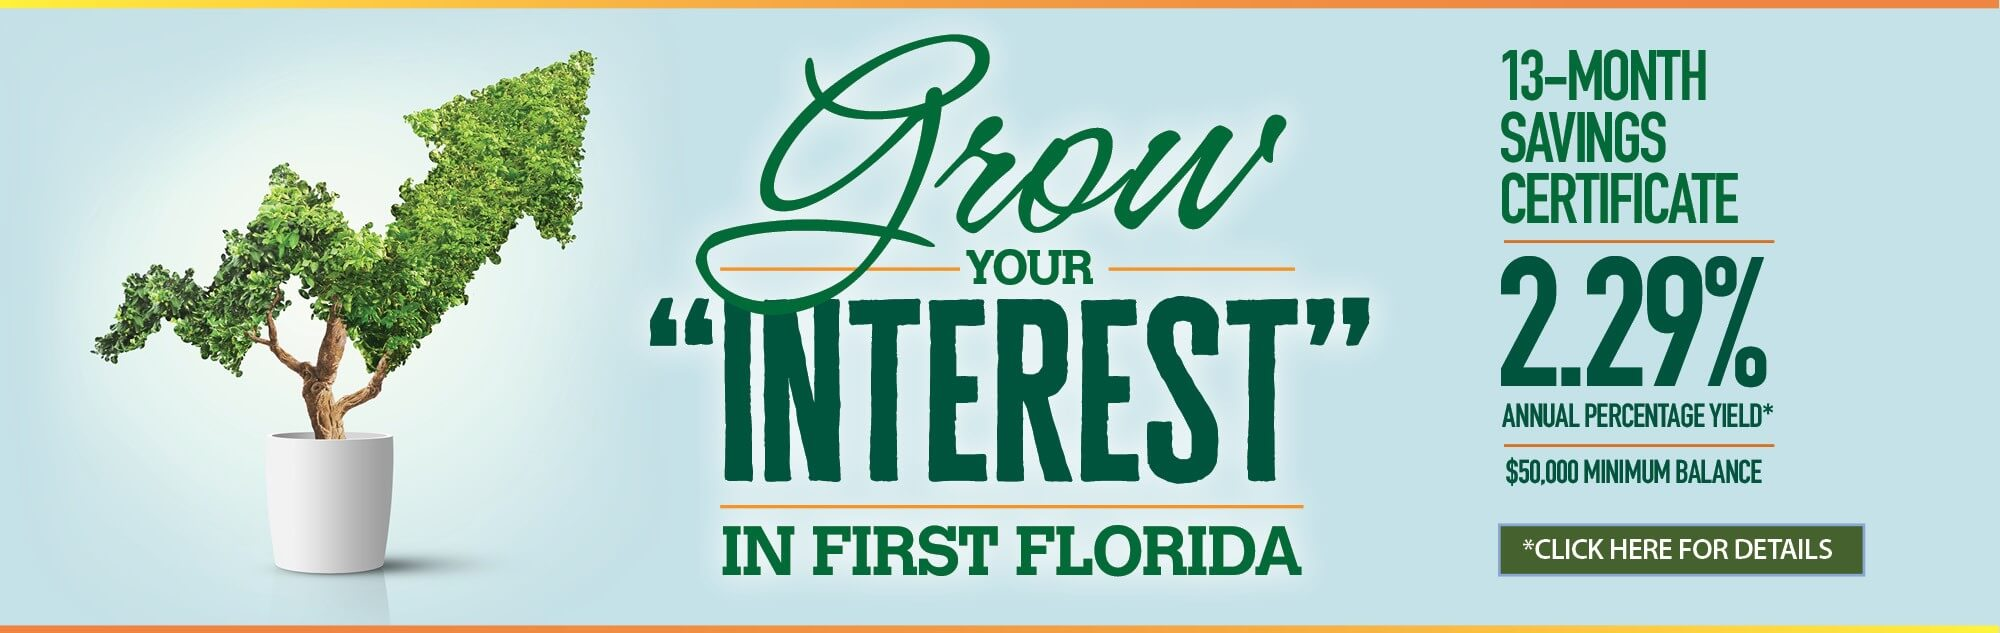 Grow your interest in First Florida with a 13-Month Savings Certificate. 2.29% annual percentage yield. click for details